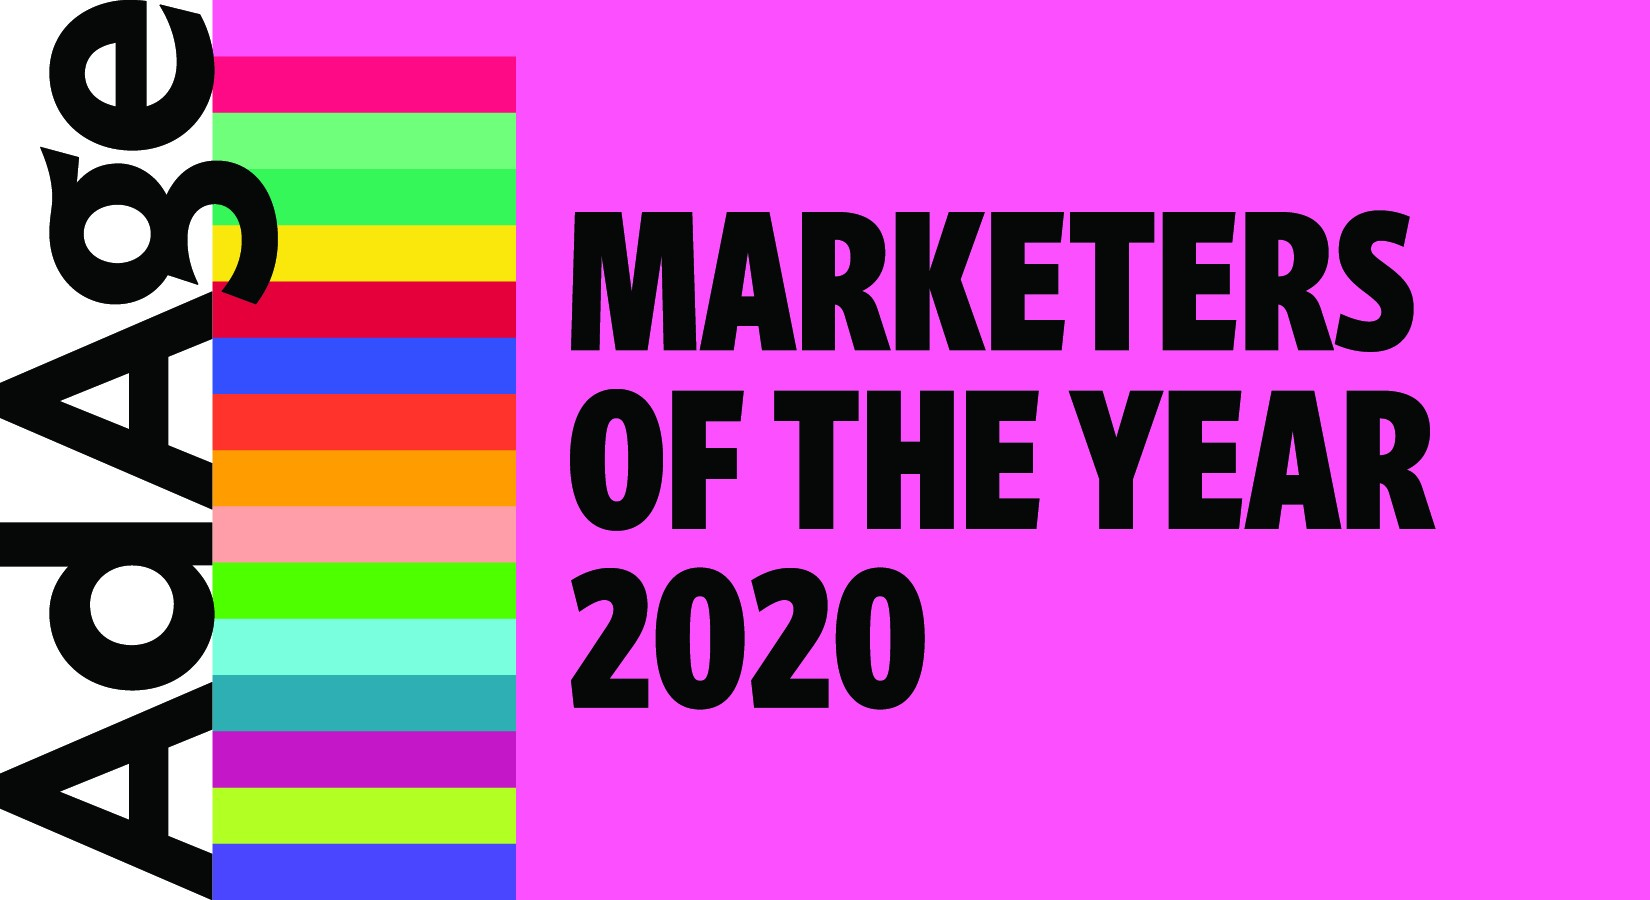 State Farm® has been named a 2020 Marketer of the Year by Ad Age.